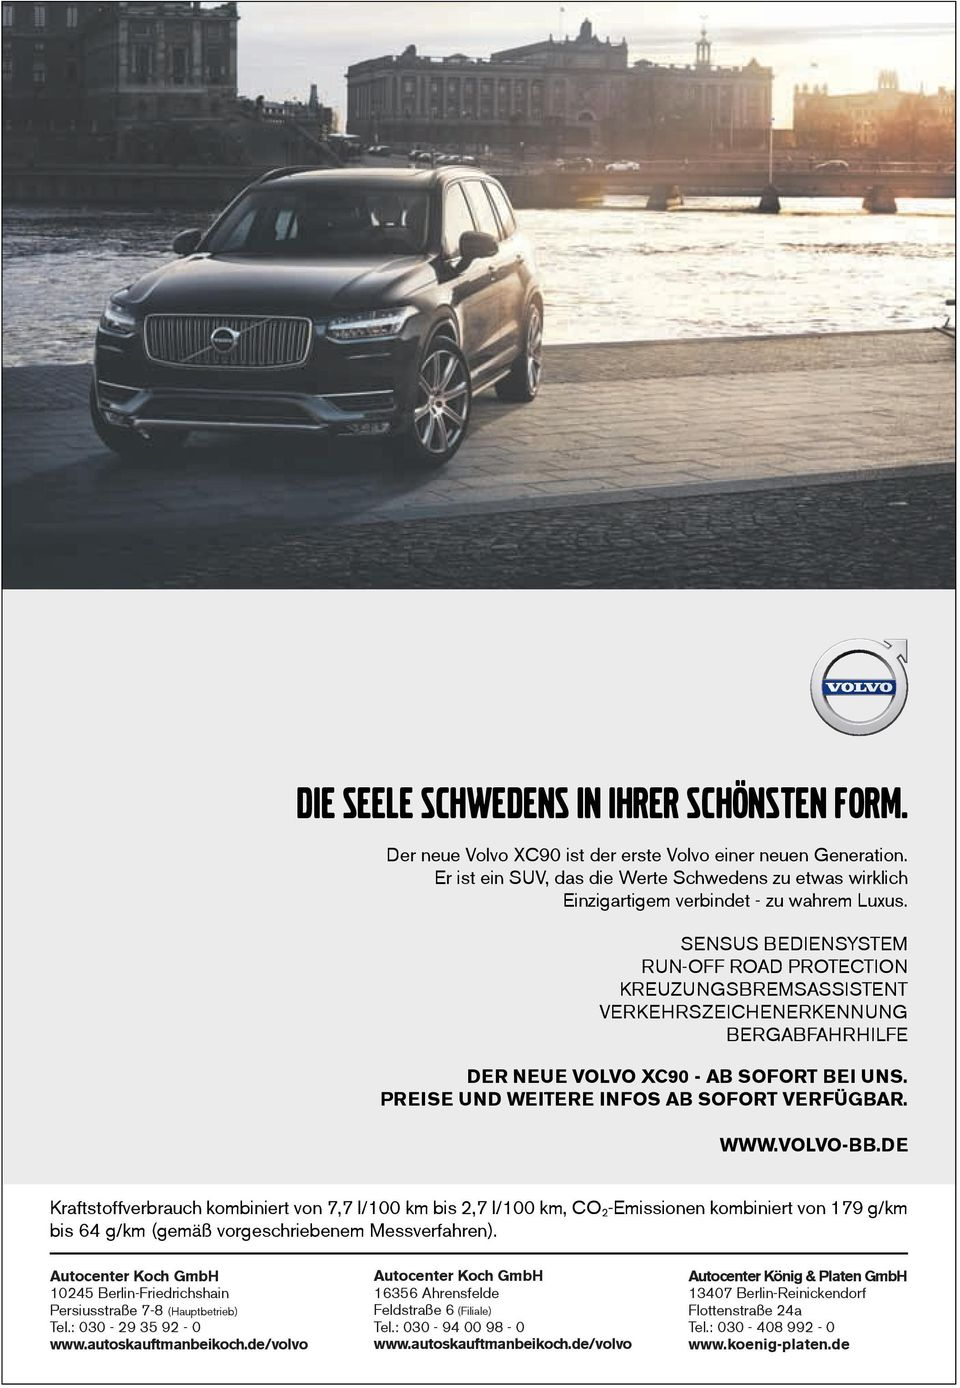 SENSUS BEDIENSYSTEM RUN-OFF ROAD PROTECTION KREUZUNGSBREMSASSISTENT VERKEHRSZEICHENERKENNUNG BERGABFAHRHILFE DER NEUE VOLVO XC90 - AB SOFORT BEI UNS. PREISE UND WEITERE INFOS AB SOFORT VERFÜGBAR. WWW.